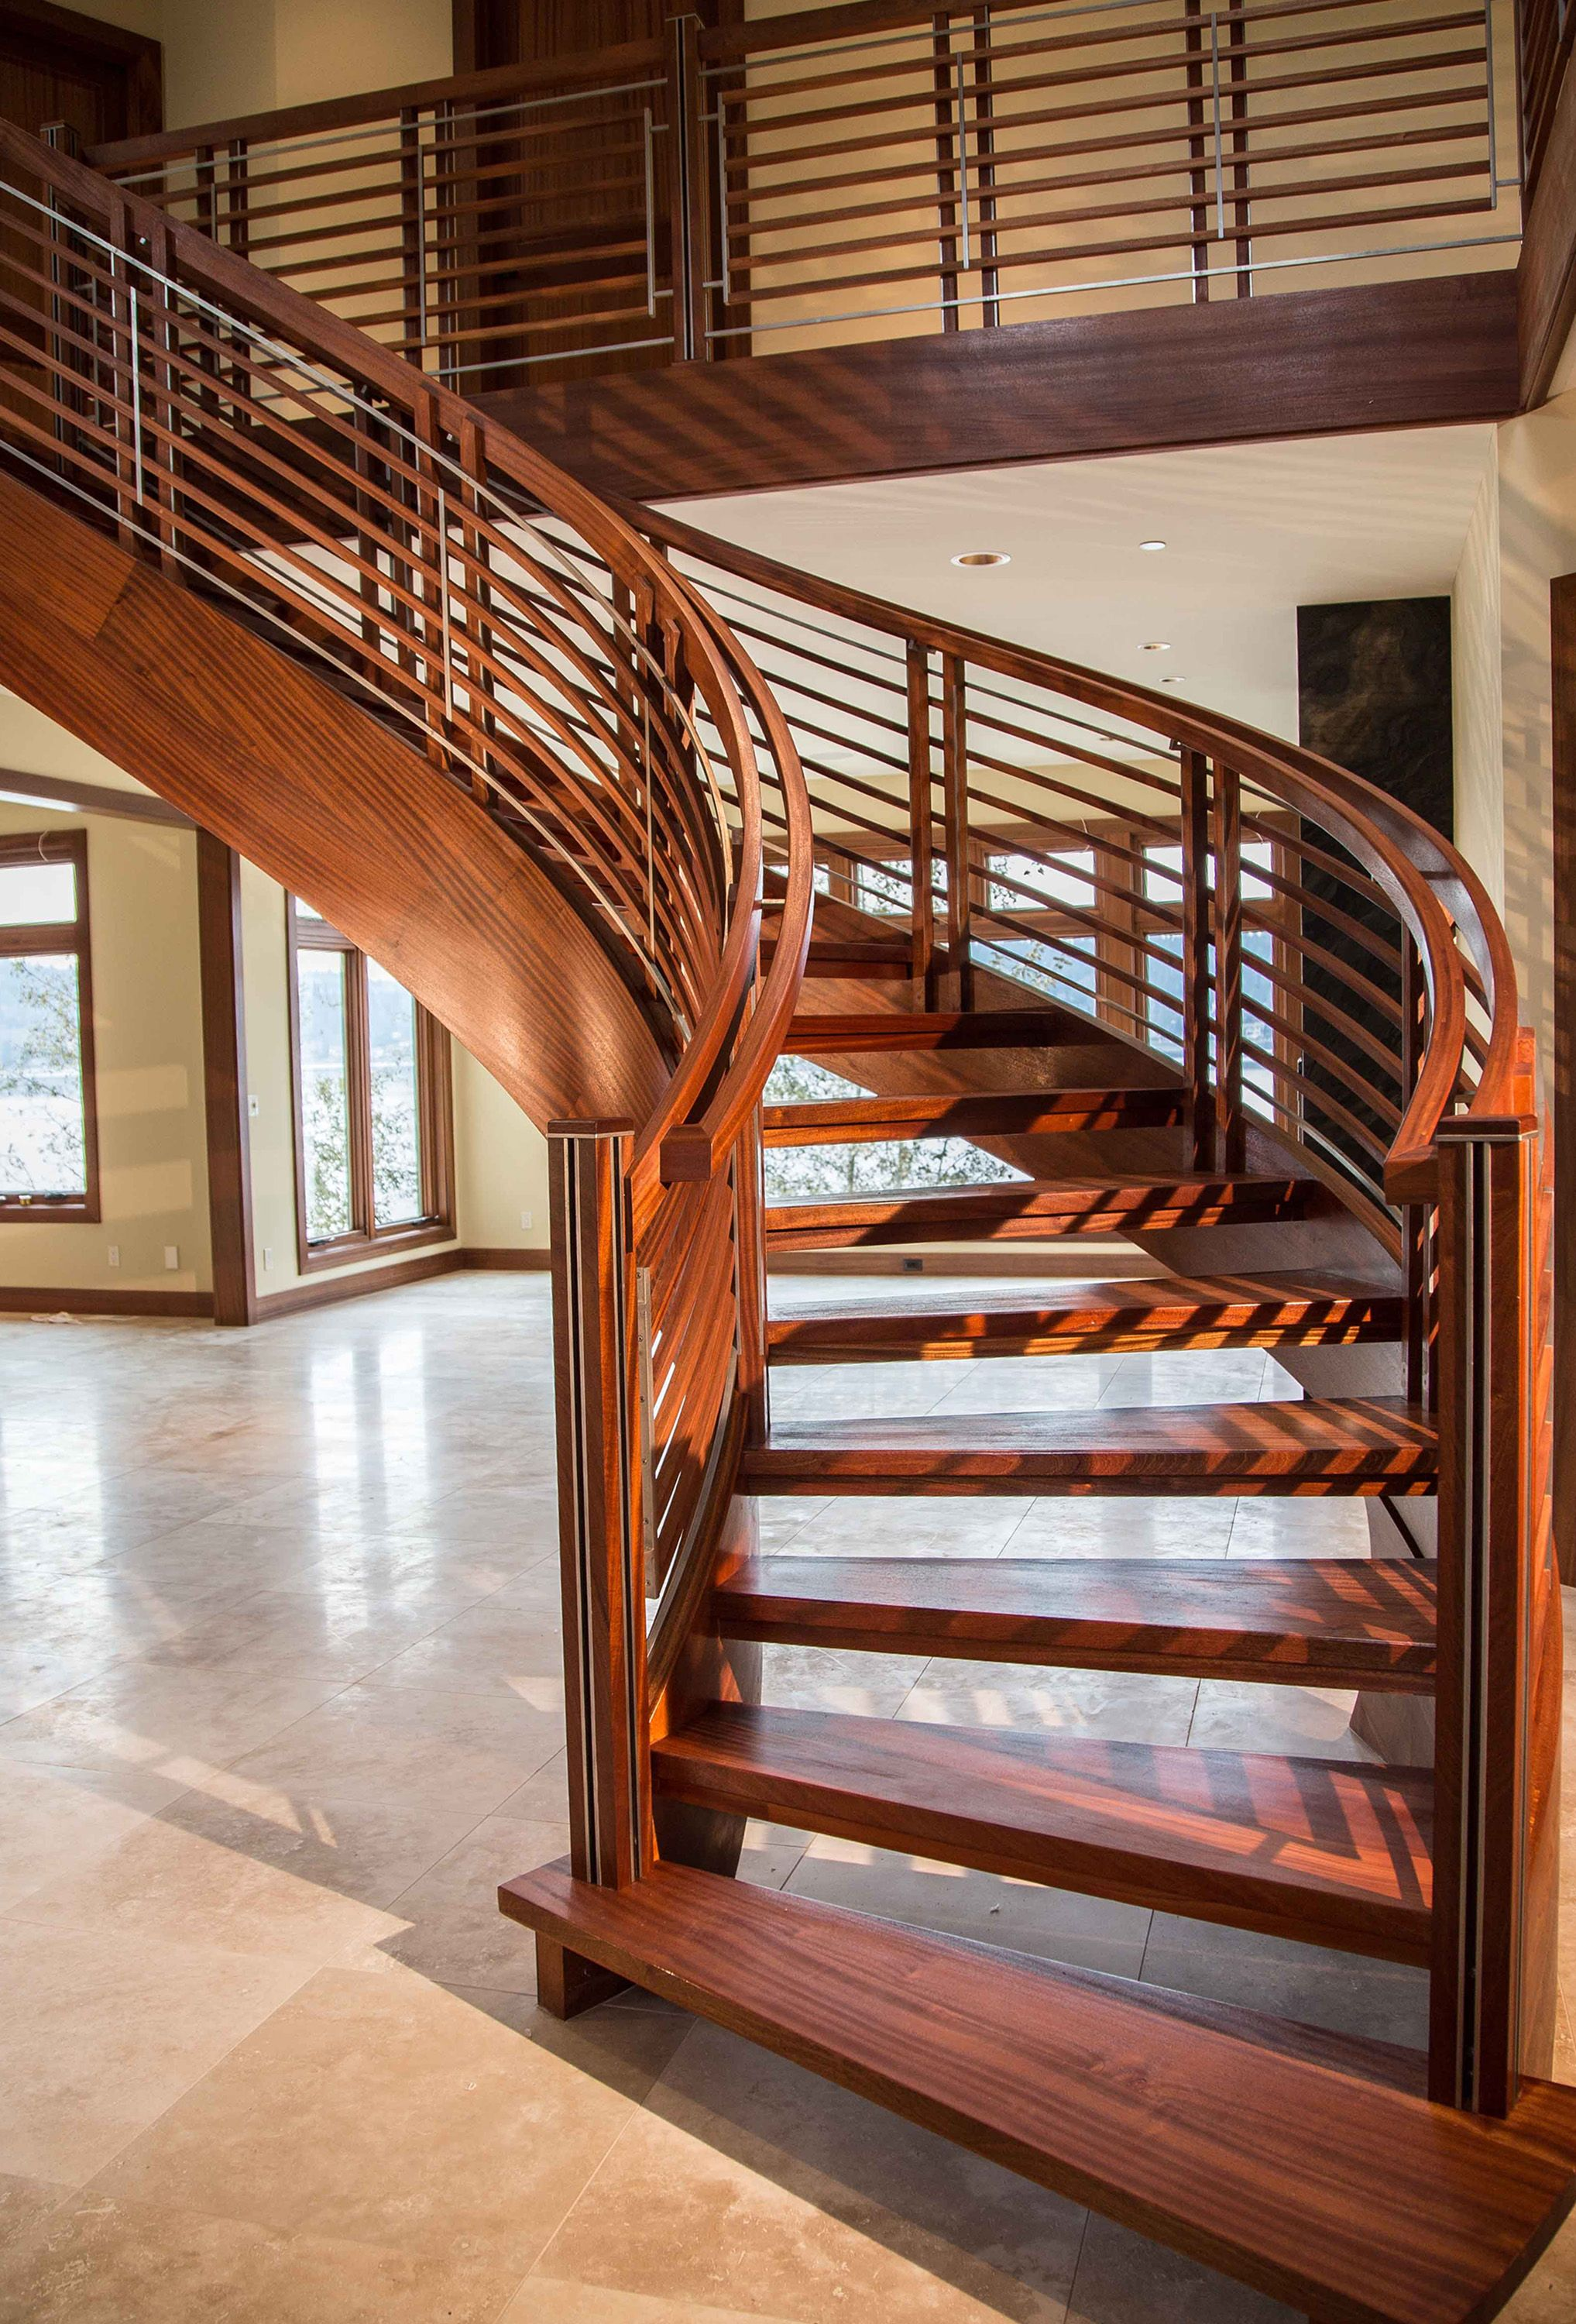 Modern Stair Design With Sapele And Inlayed Stainless Steel